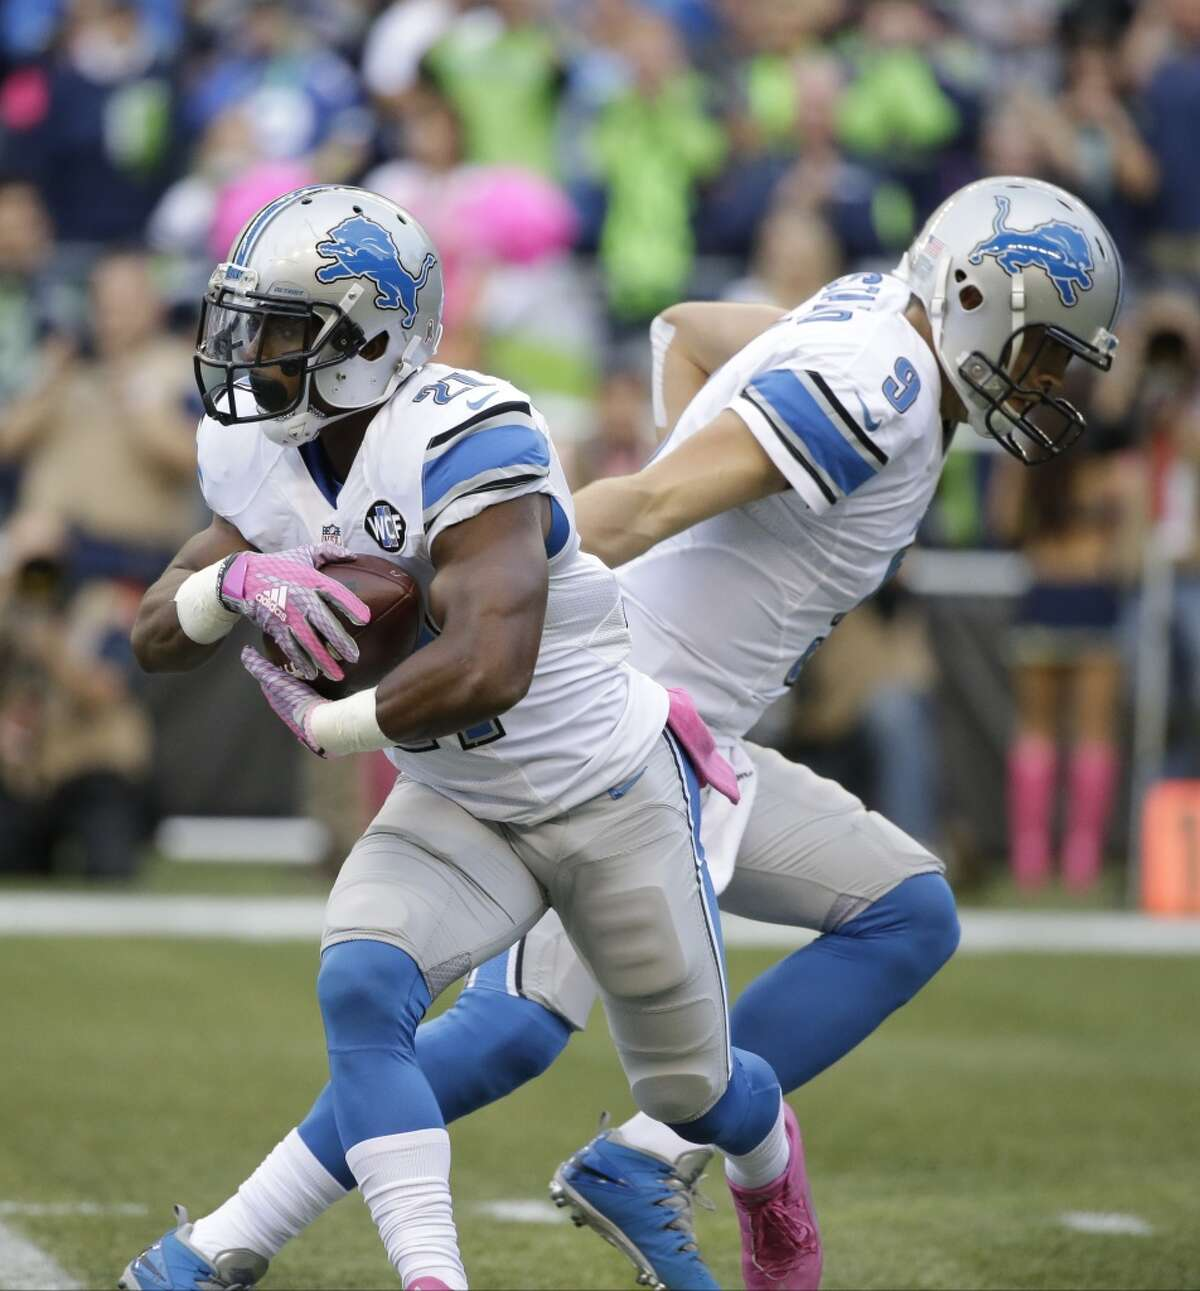 32. Detroit Lions (0-4) Last week: 30 The Lions were robbed of their first win by the officials in Seattle. They'll try to bounce back at home against Arizona.